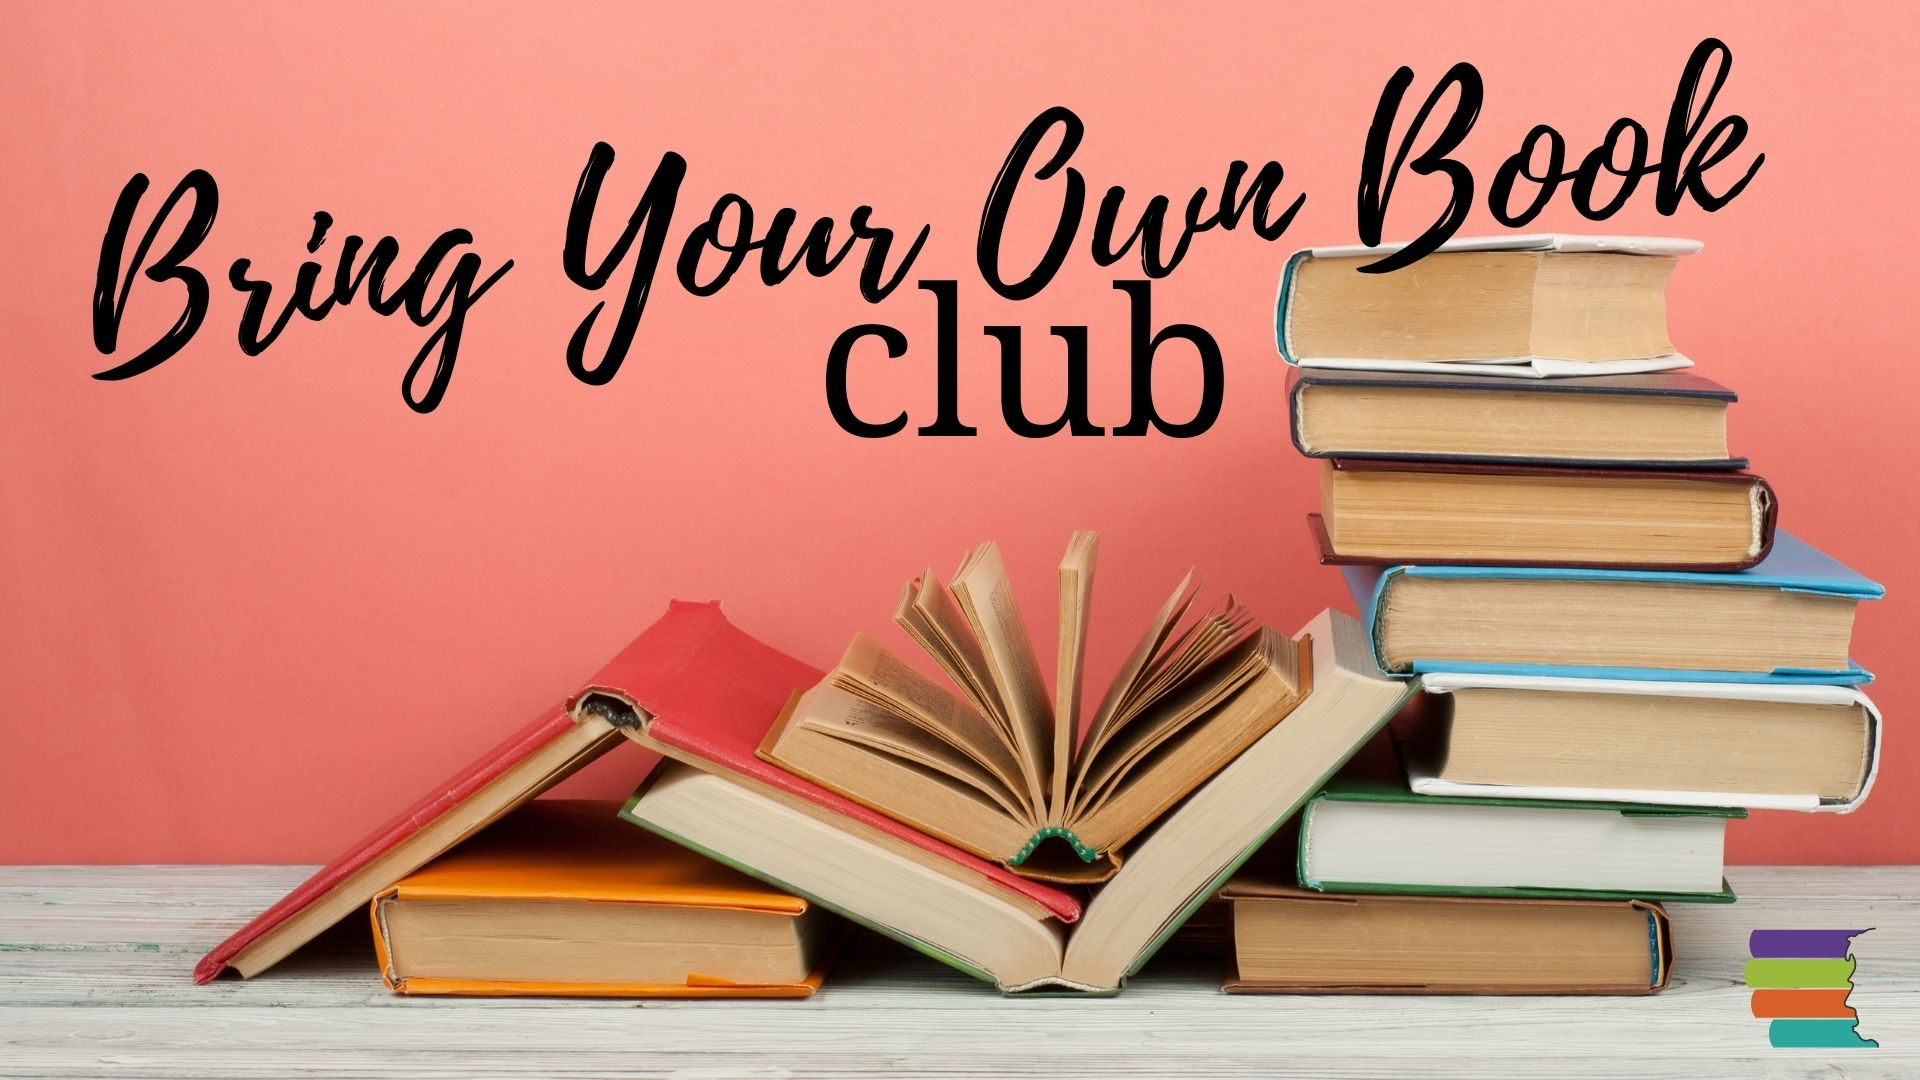 book stacks_bring your own book club